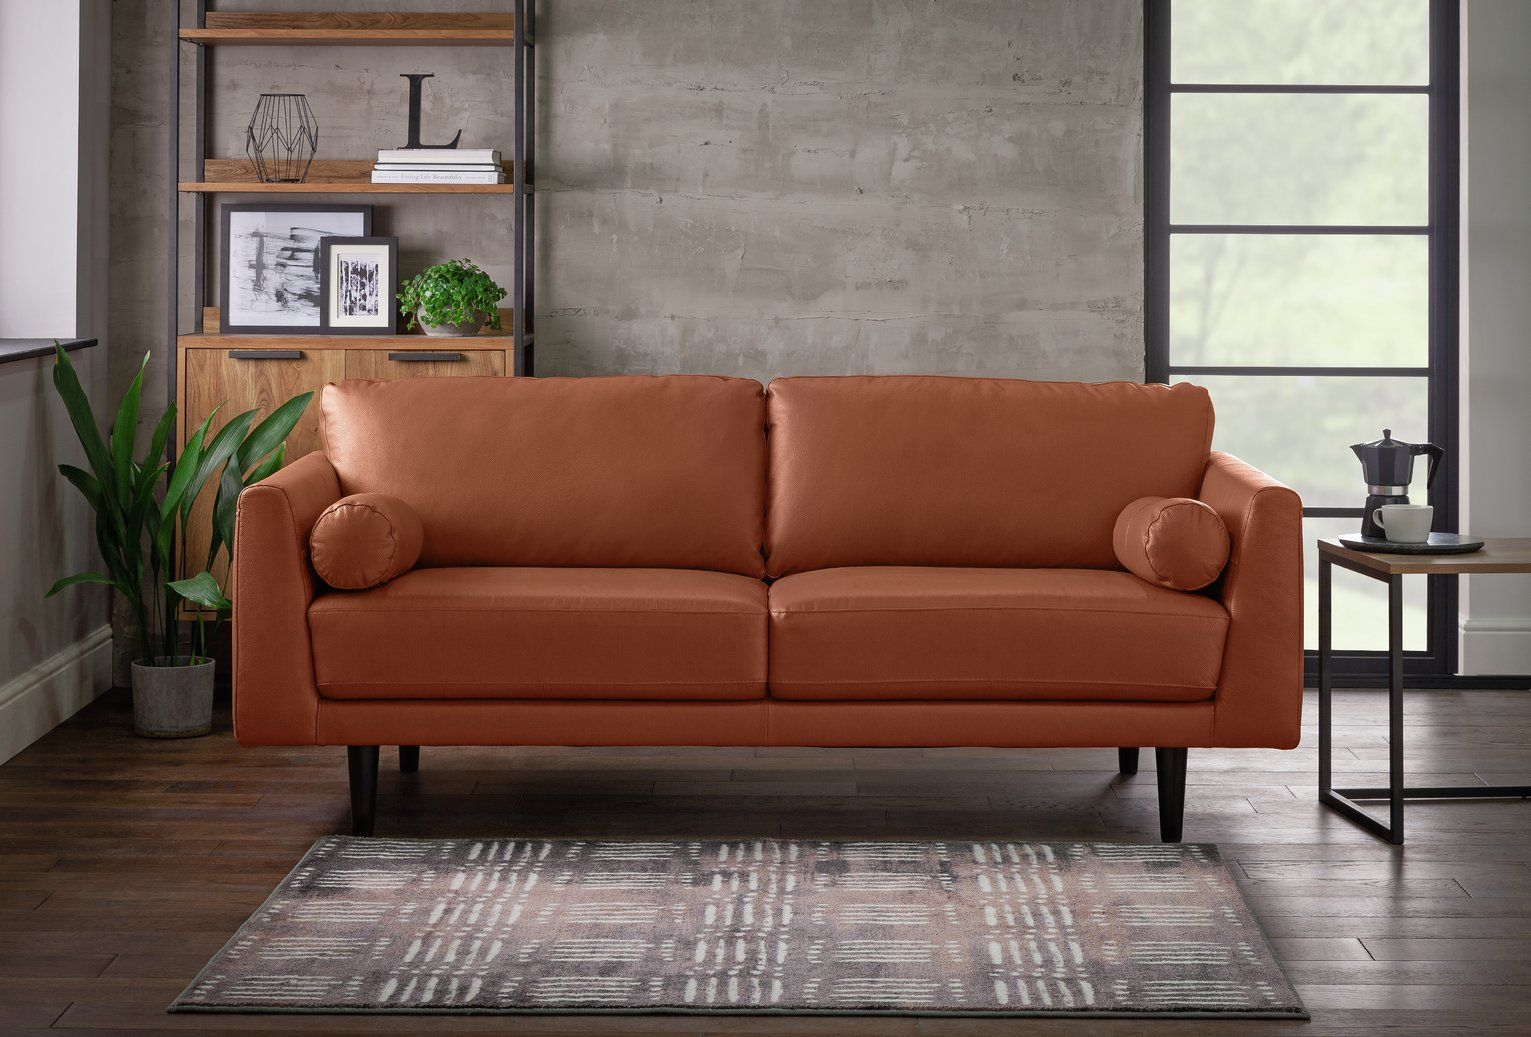 Buy Argos Home Jackson 3 Seater Leather Sofa Tan Sofas In 2020 Leather Sofa 3 Seater Leather Sofa Sofa